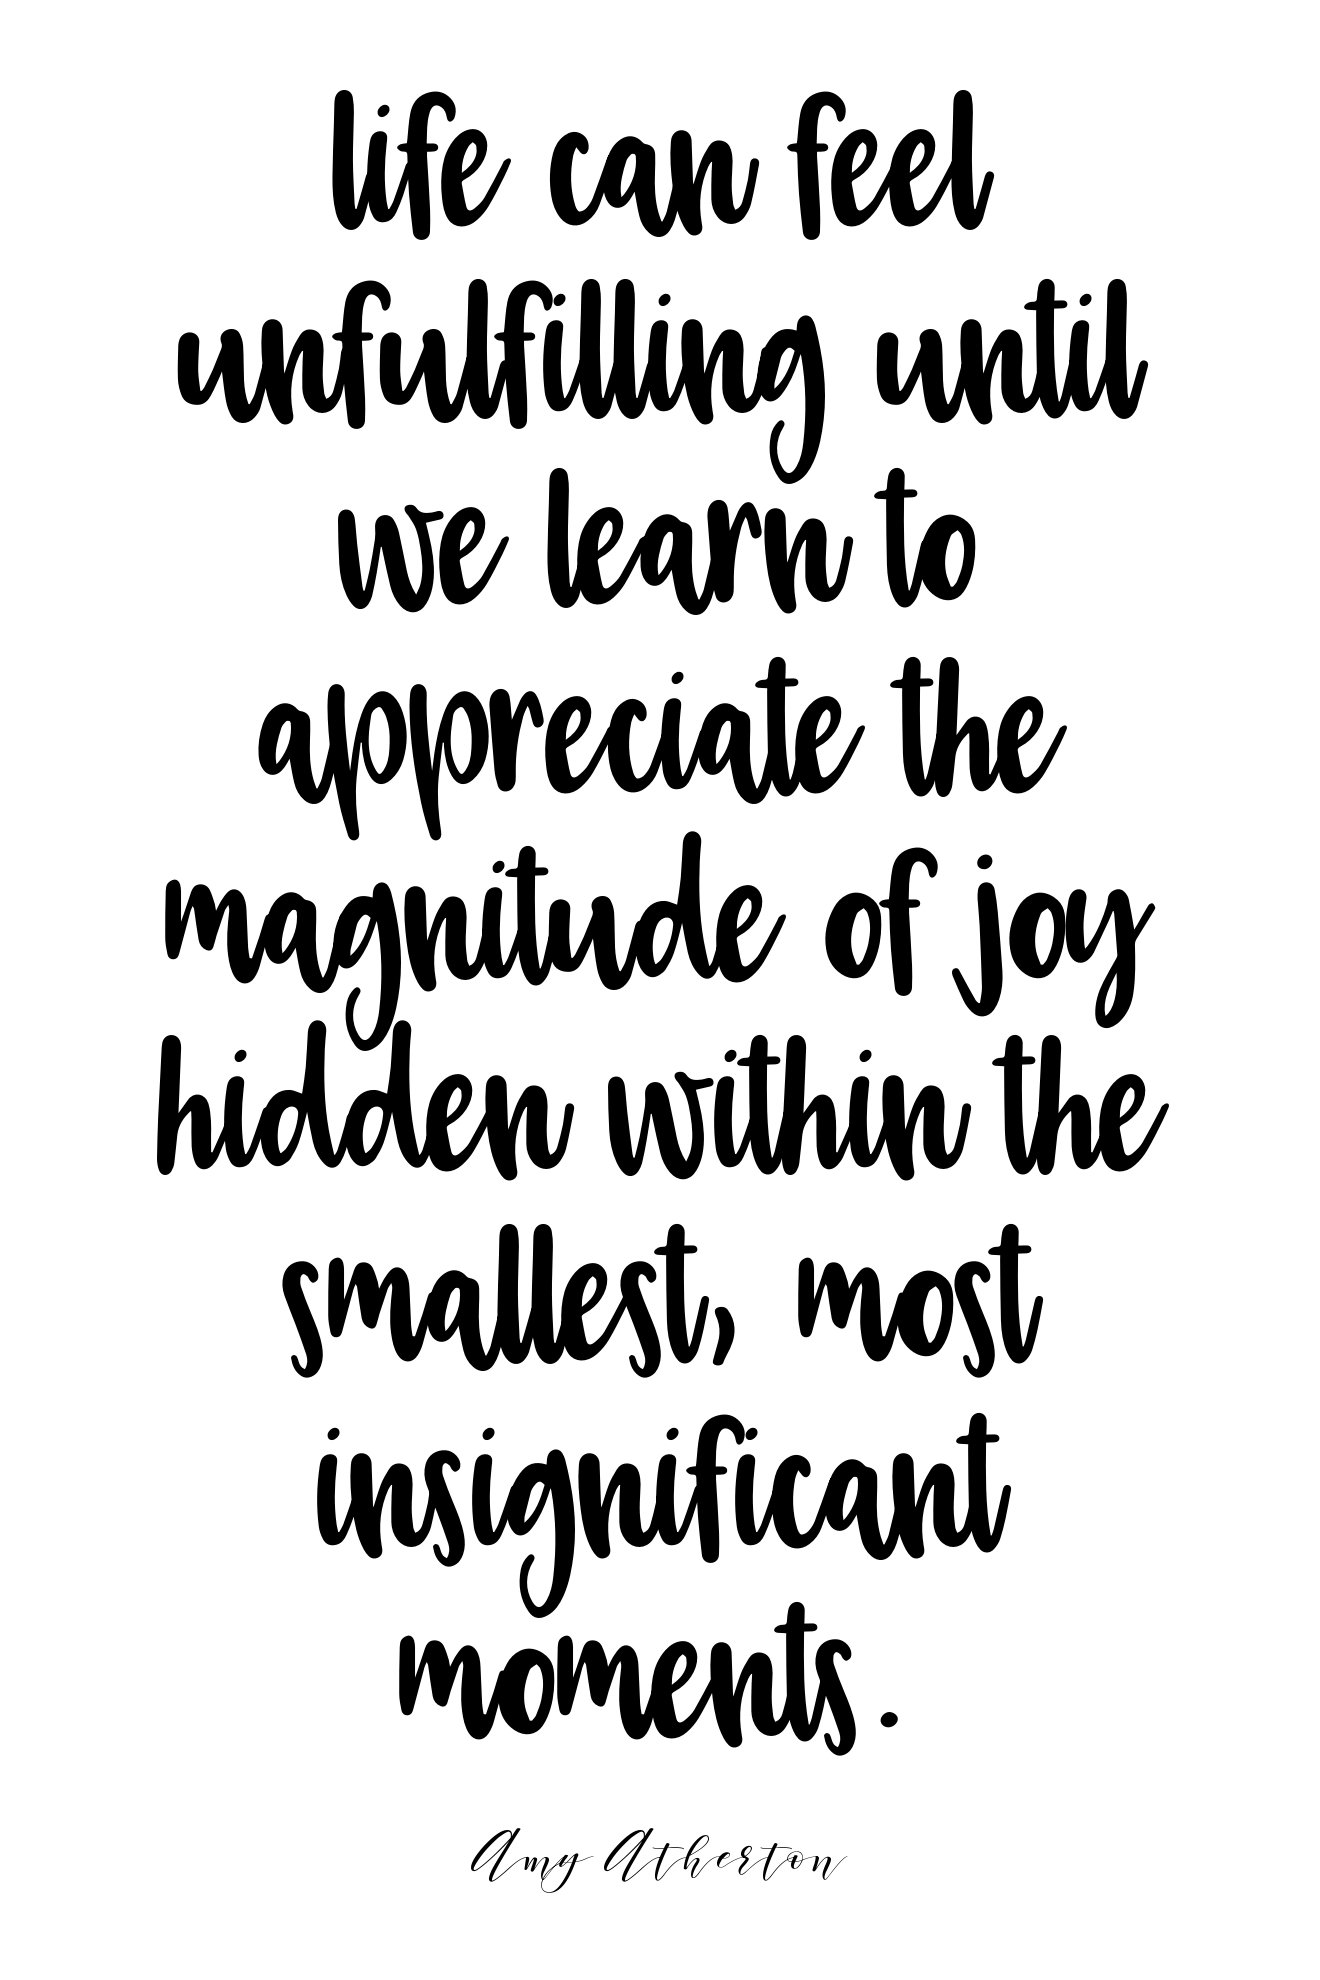 Life can feel unfulfilling until we learn to appreciate the magnitude of joy hidden within the smallest, most insignificant moments. @amybakeshealthy